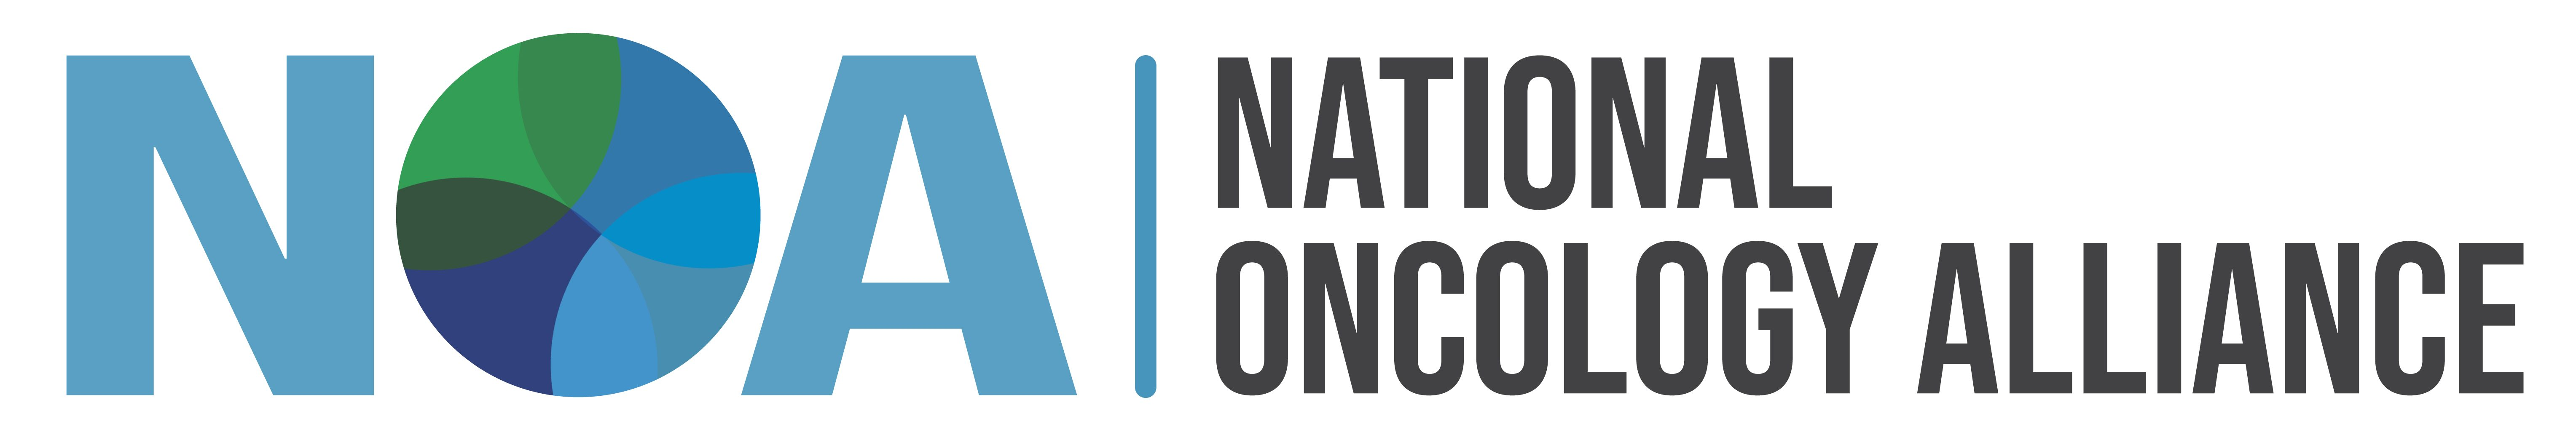 National Oncology Alliance